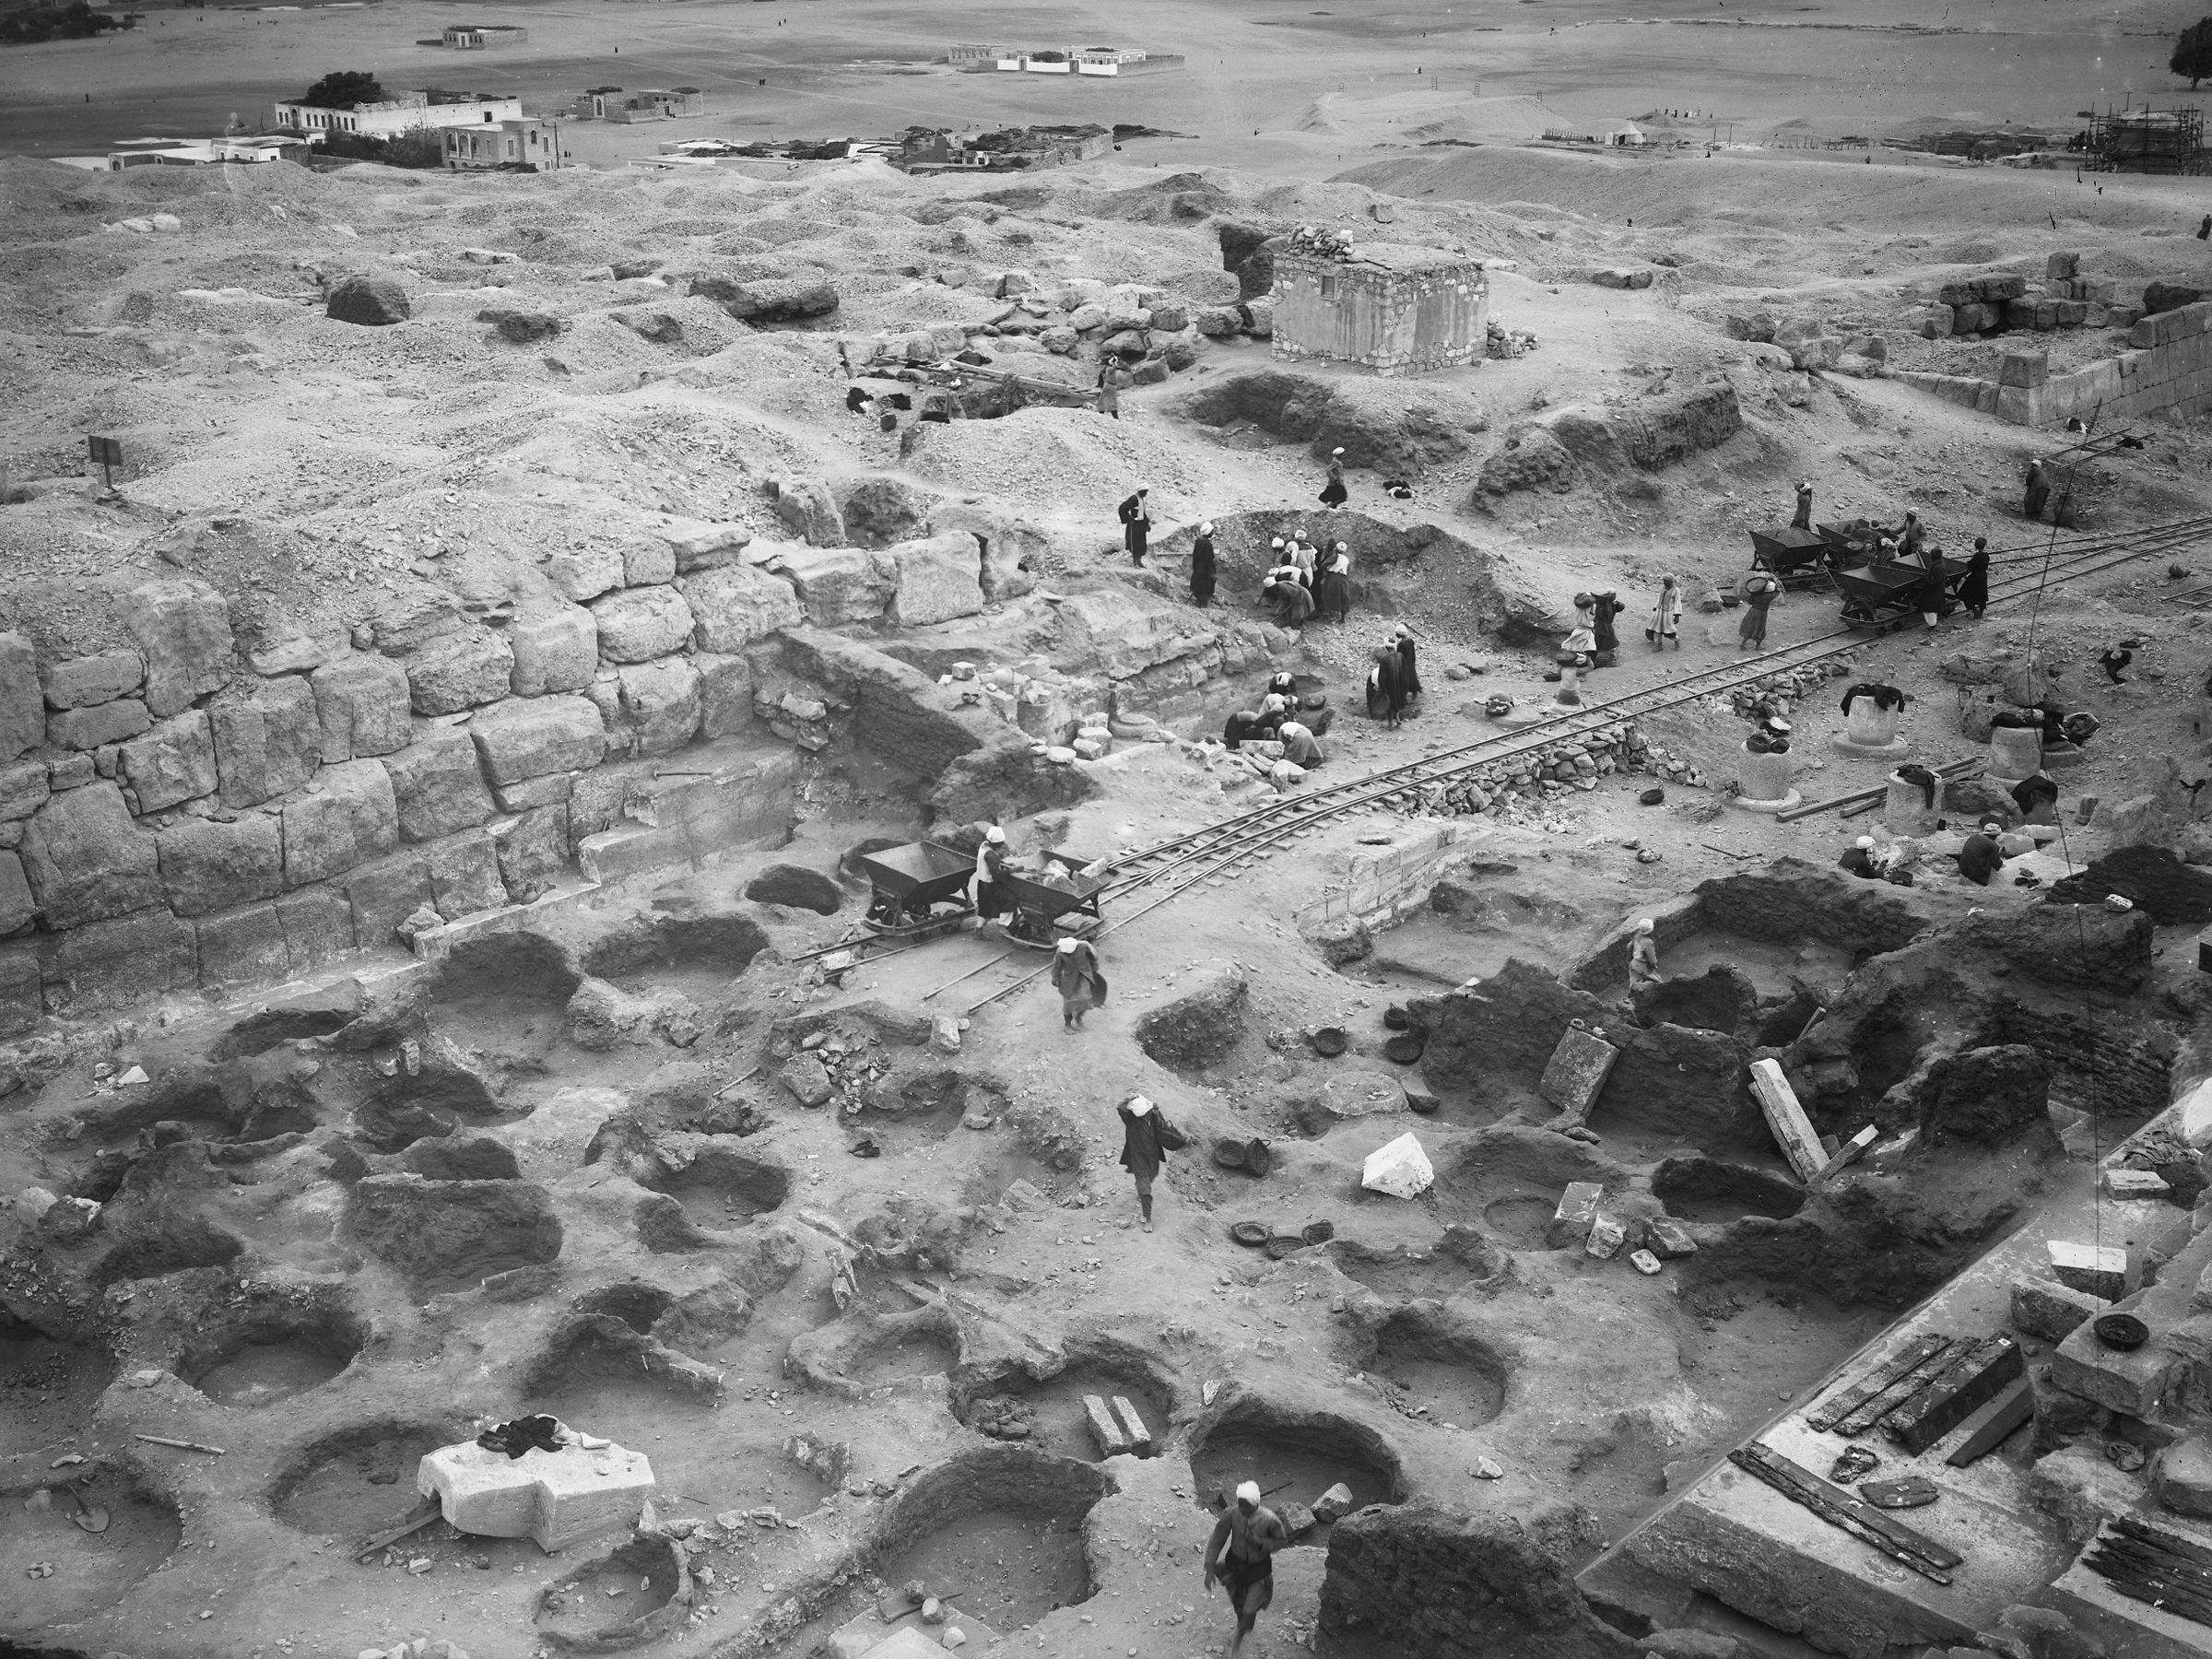 Eastern Cemetery: Site: Giza; View: street G 7000, Isis Temple, bin 163, bin 164, bin 165, bin 166, bin 168, bin 170, bin 172, bin 173, bin 174, bin 175, bin 177, bin 186, bin 187, bin 190, bin 194, bin 197, bin 198, bin 201, bin 2, bin 3, bin 4, bin 5